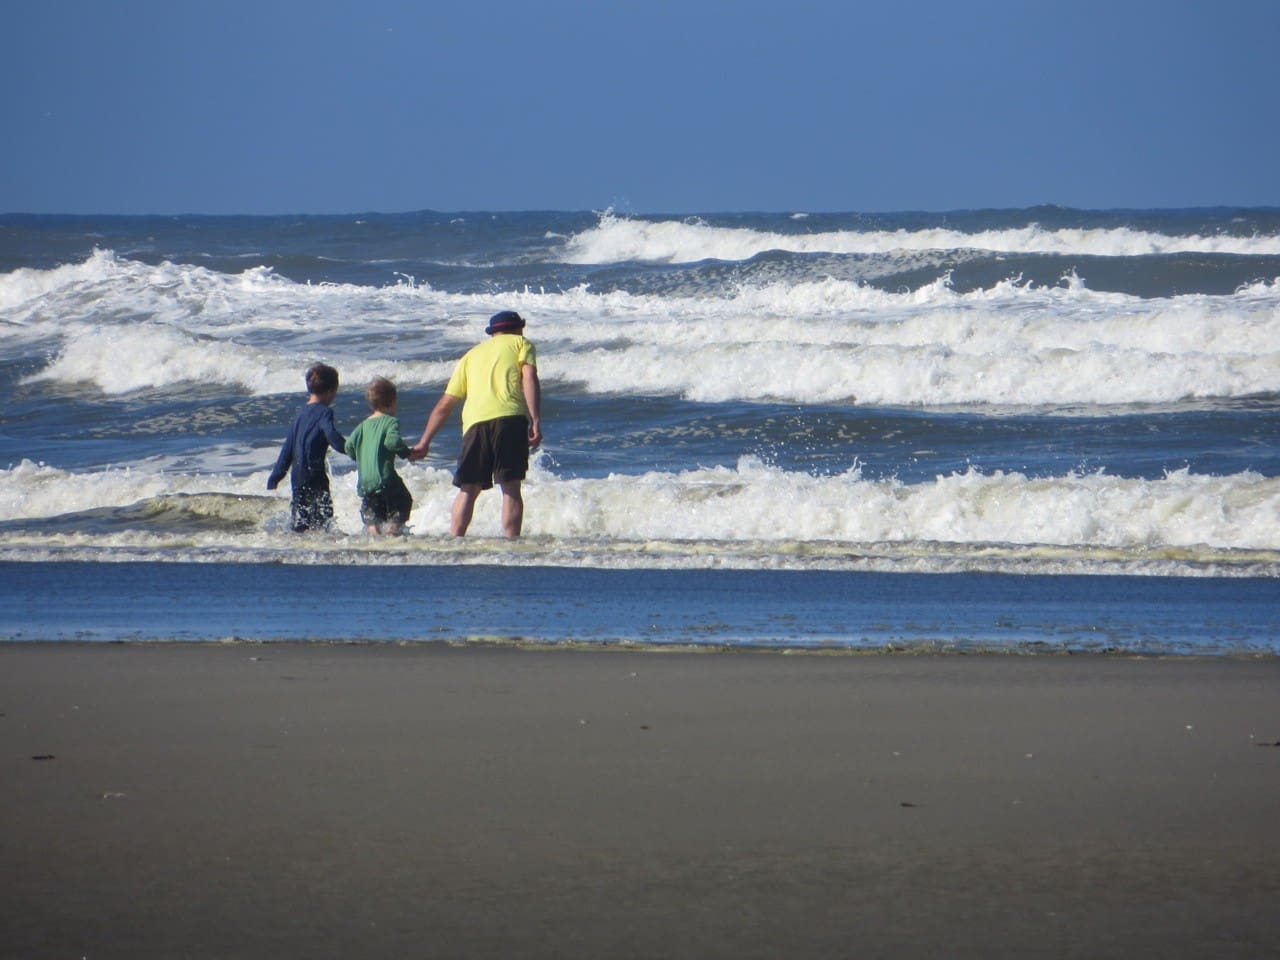 Playing in the waves is one of my favorite things to do!